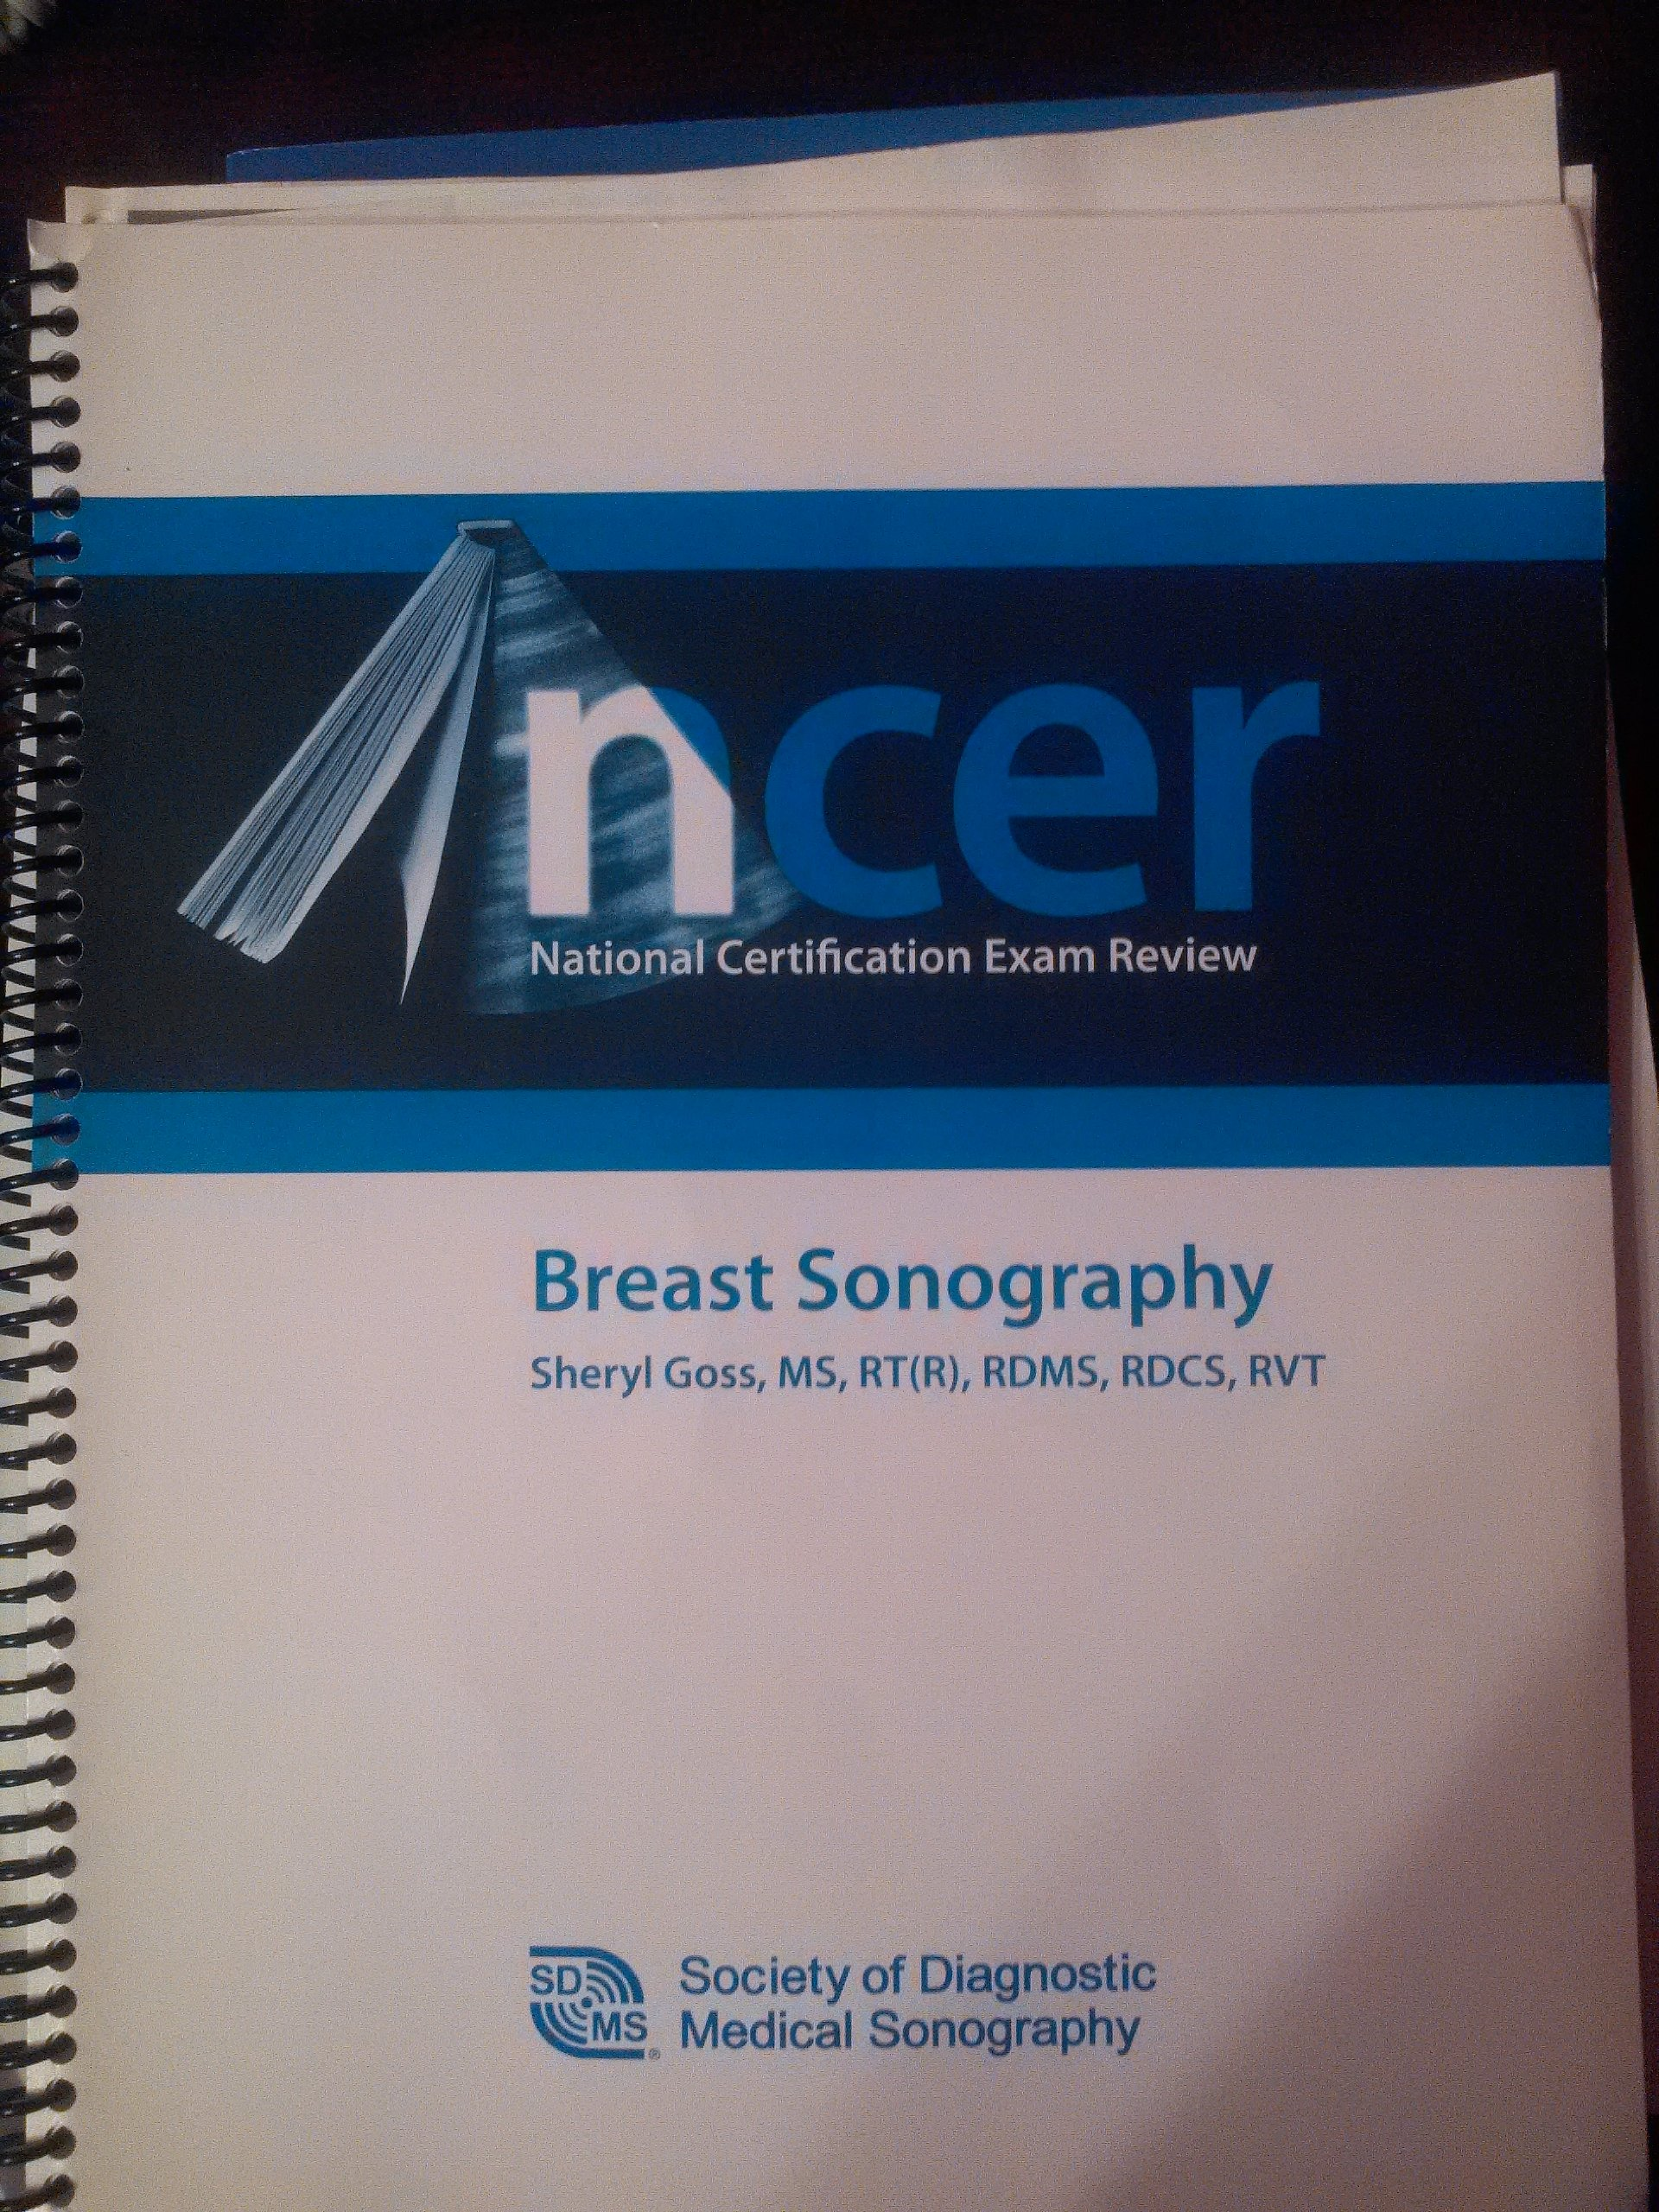 Ncer National Certification Exam Review Breast Sonography Ms Rtr